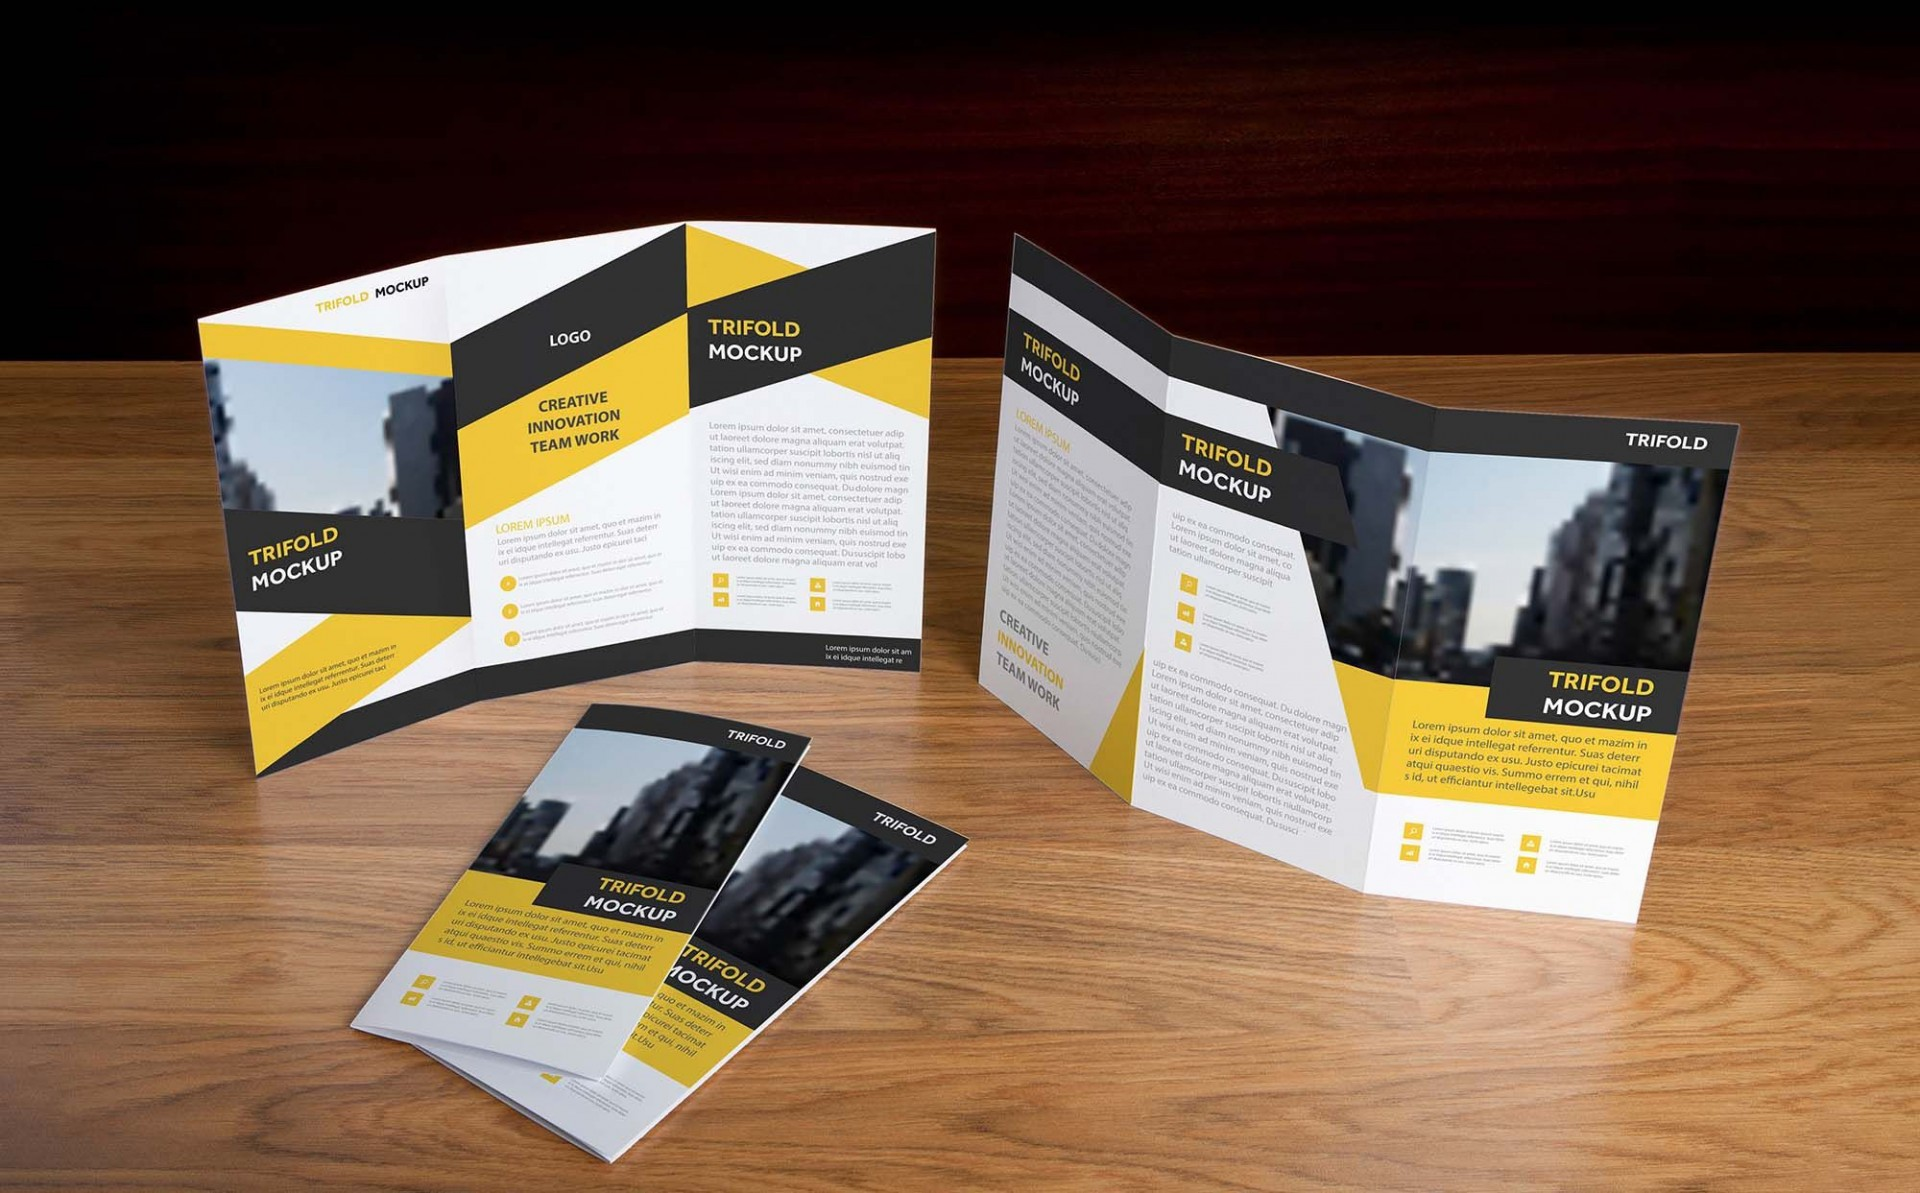 009 Simple Tri Fold Template Free Idea  Brochure Download Psd Microsoft Word1920